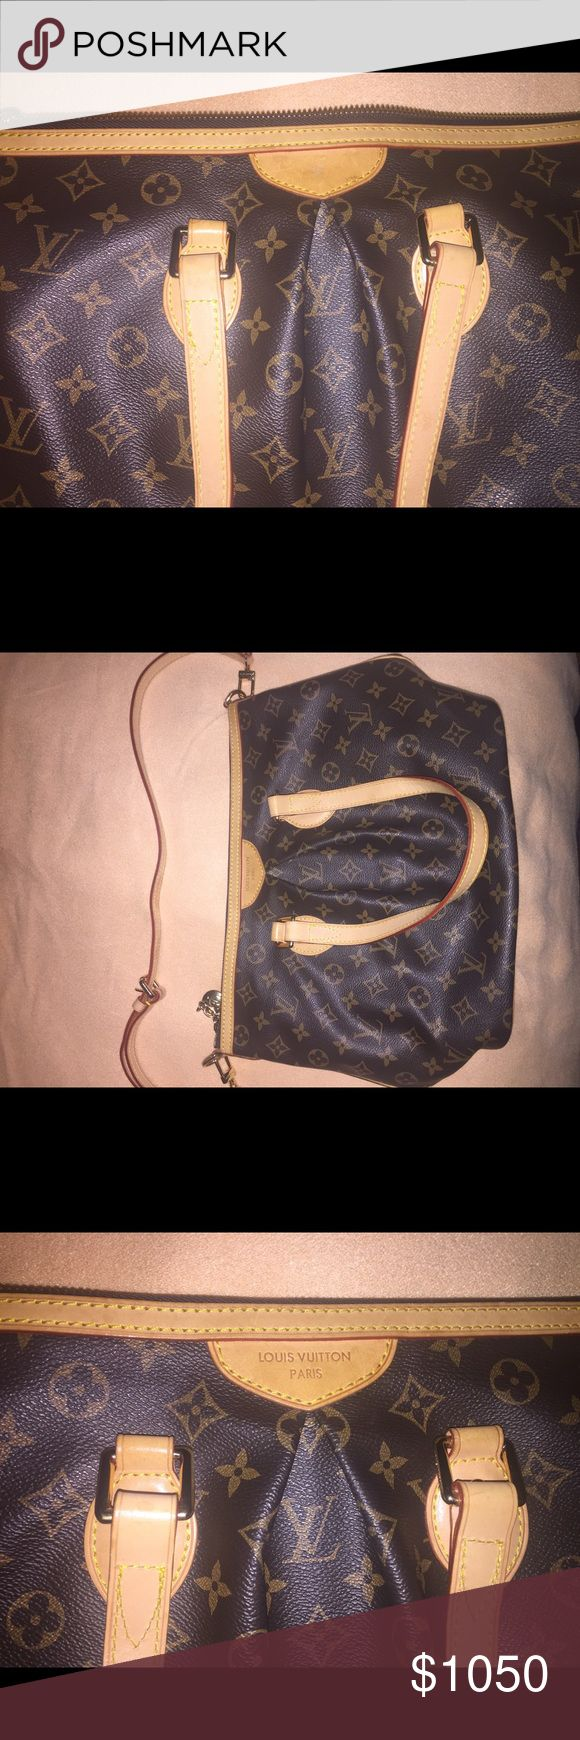 "LV BAG Louis Vuitton 100% Authentic LV Palermo pm in perfect condition and never been used. Exterior has beautiful  brown monogram canvas, long leather straps, handle straps and gold hardware.  Interior is a solid brown canvas material.    Measurements: 14""L  x  11""H  x  6""W   Free authentication by Poshmak   Bundle discount can't be used when purchasing this item Louis Vuitton Bags Shoulder Bags"